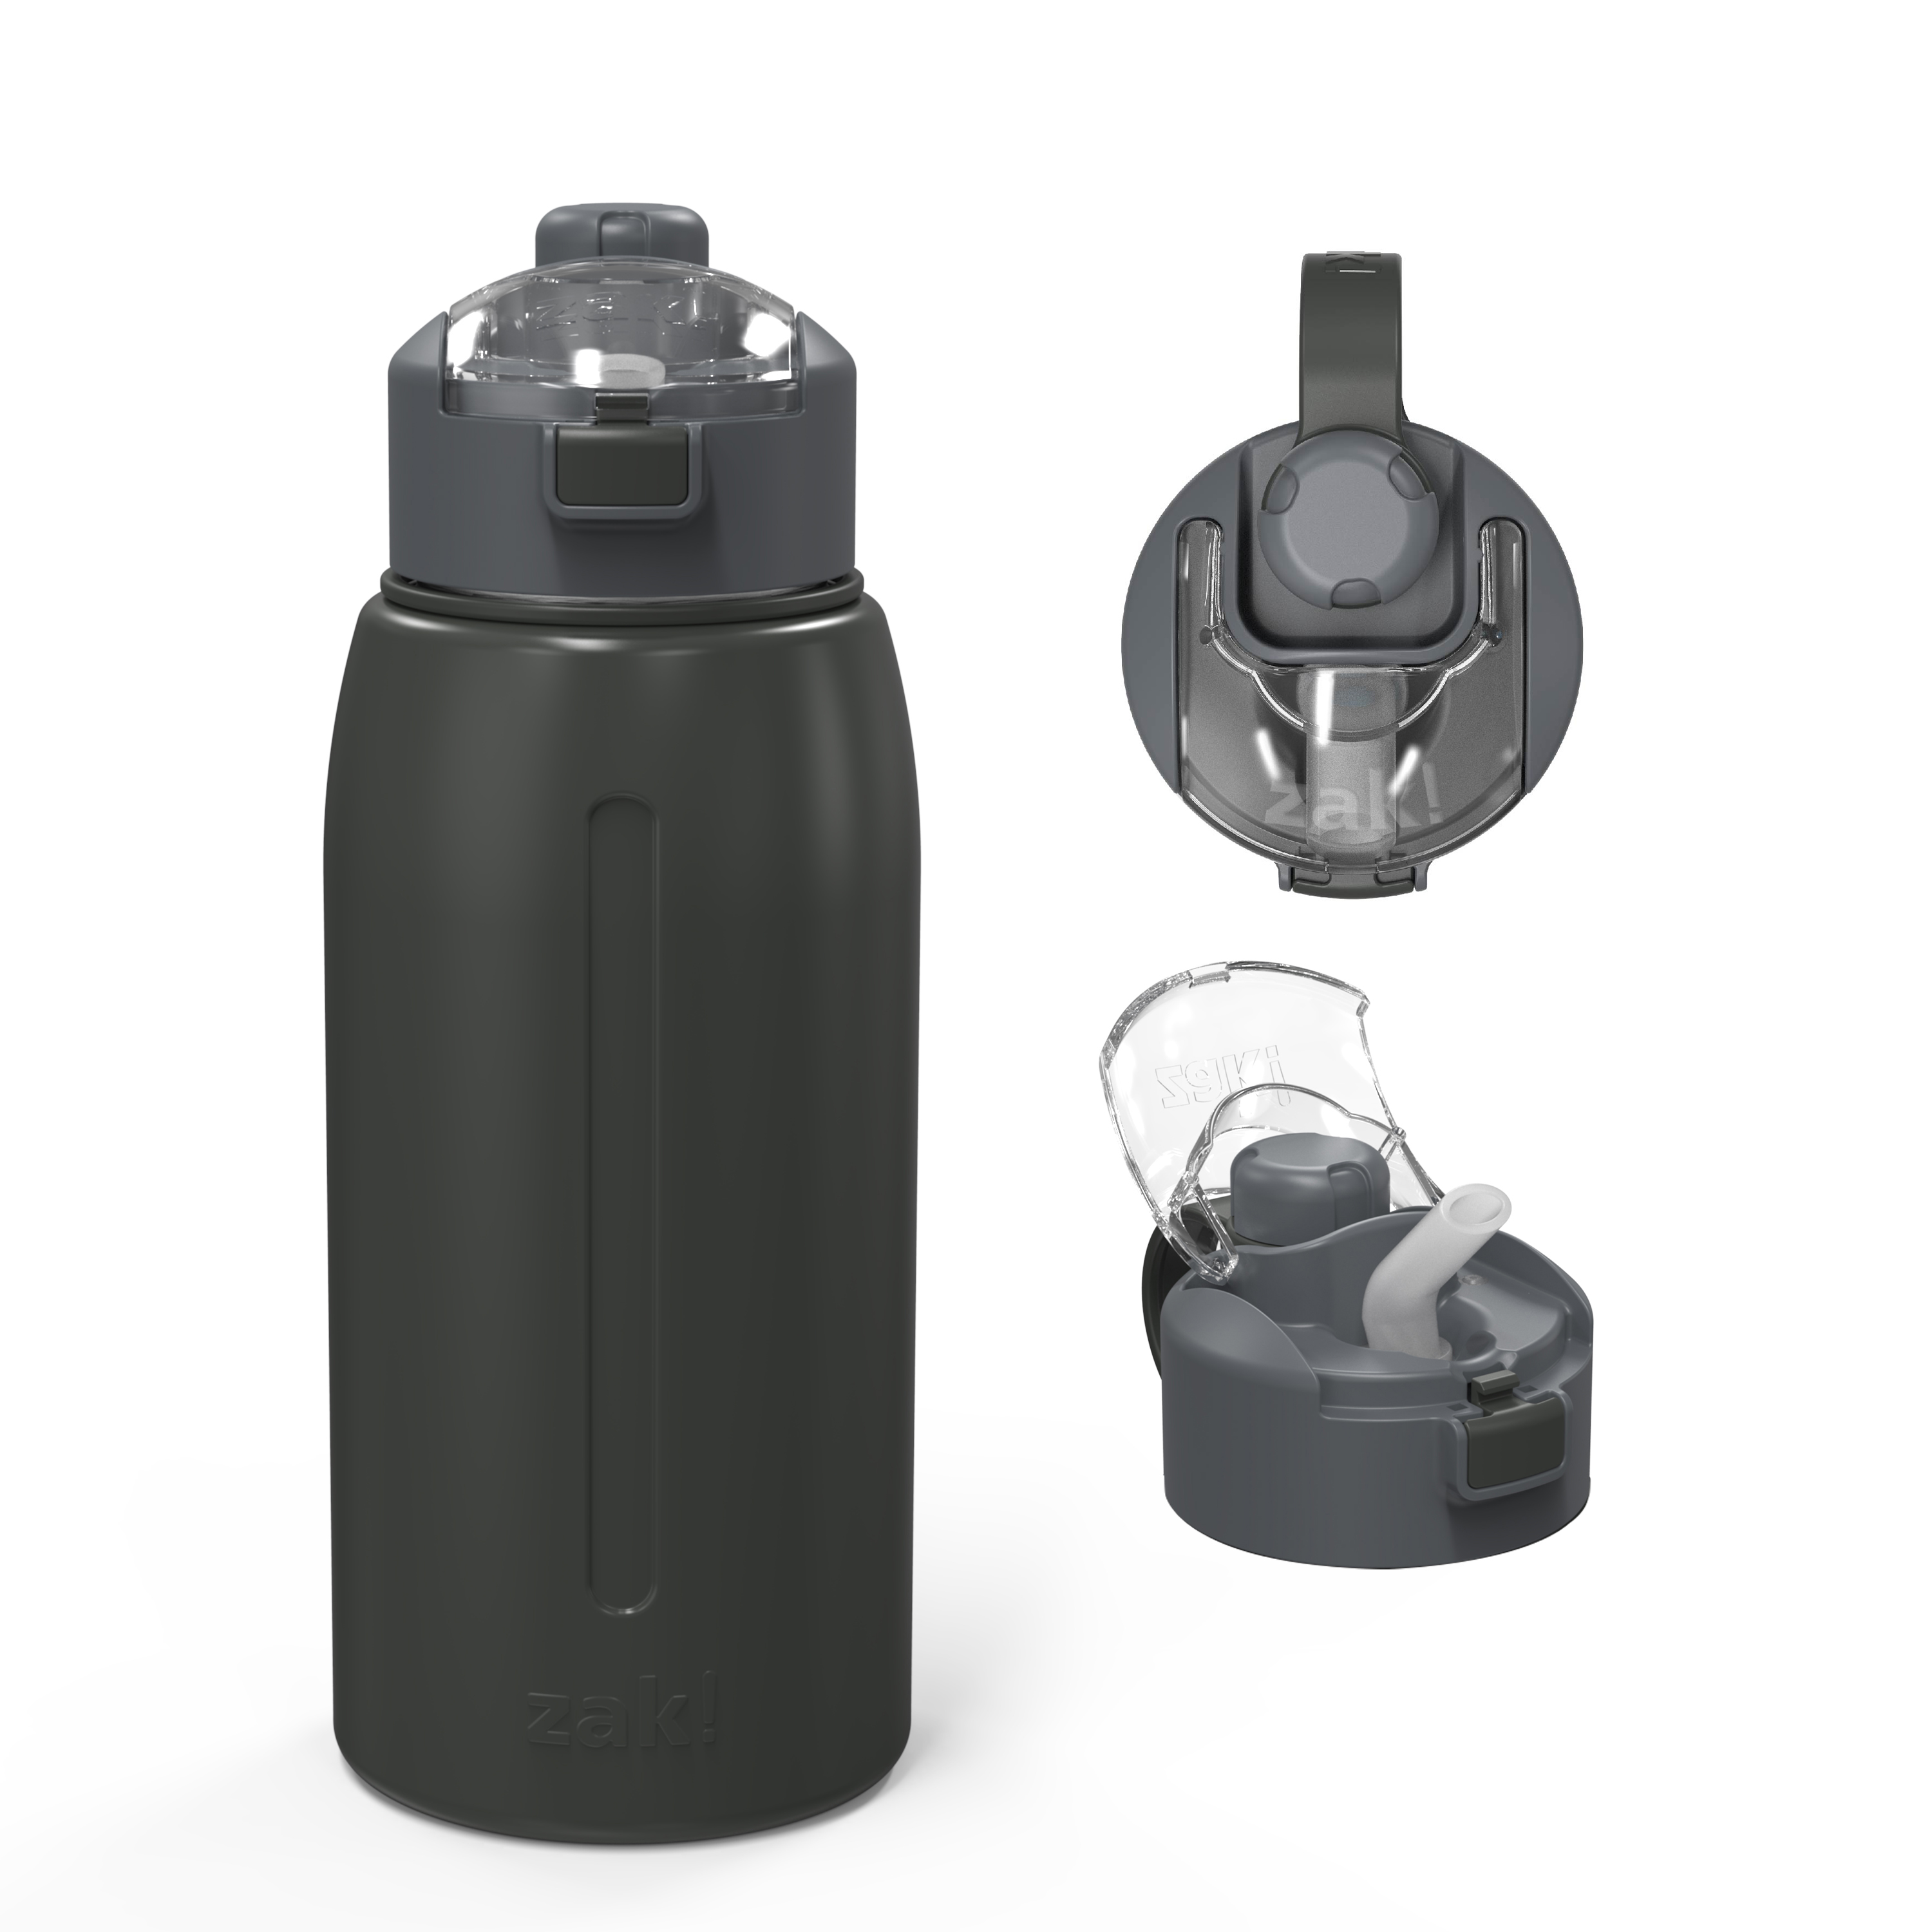 Genesis 32 ounce Vacuum Insulated Stainless Steel Tumbler, Charcoal slideshow image 2